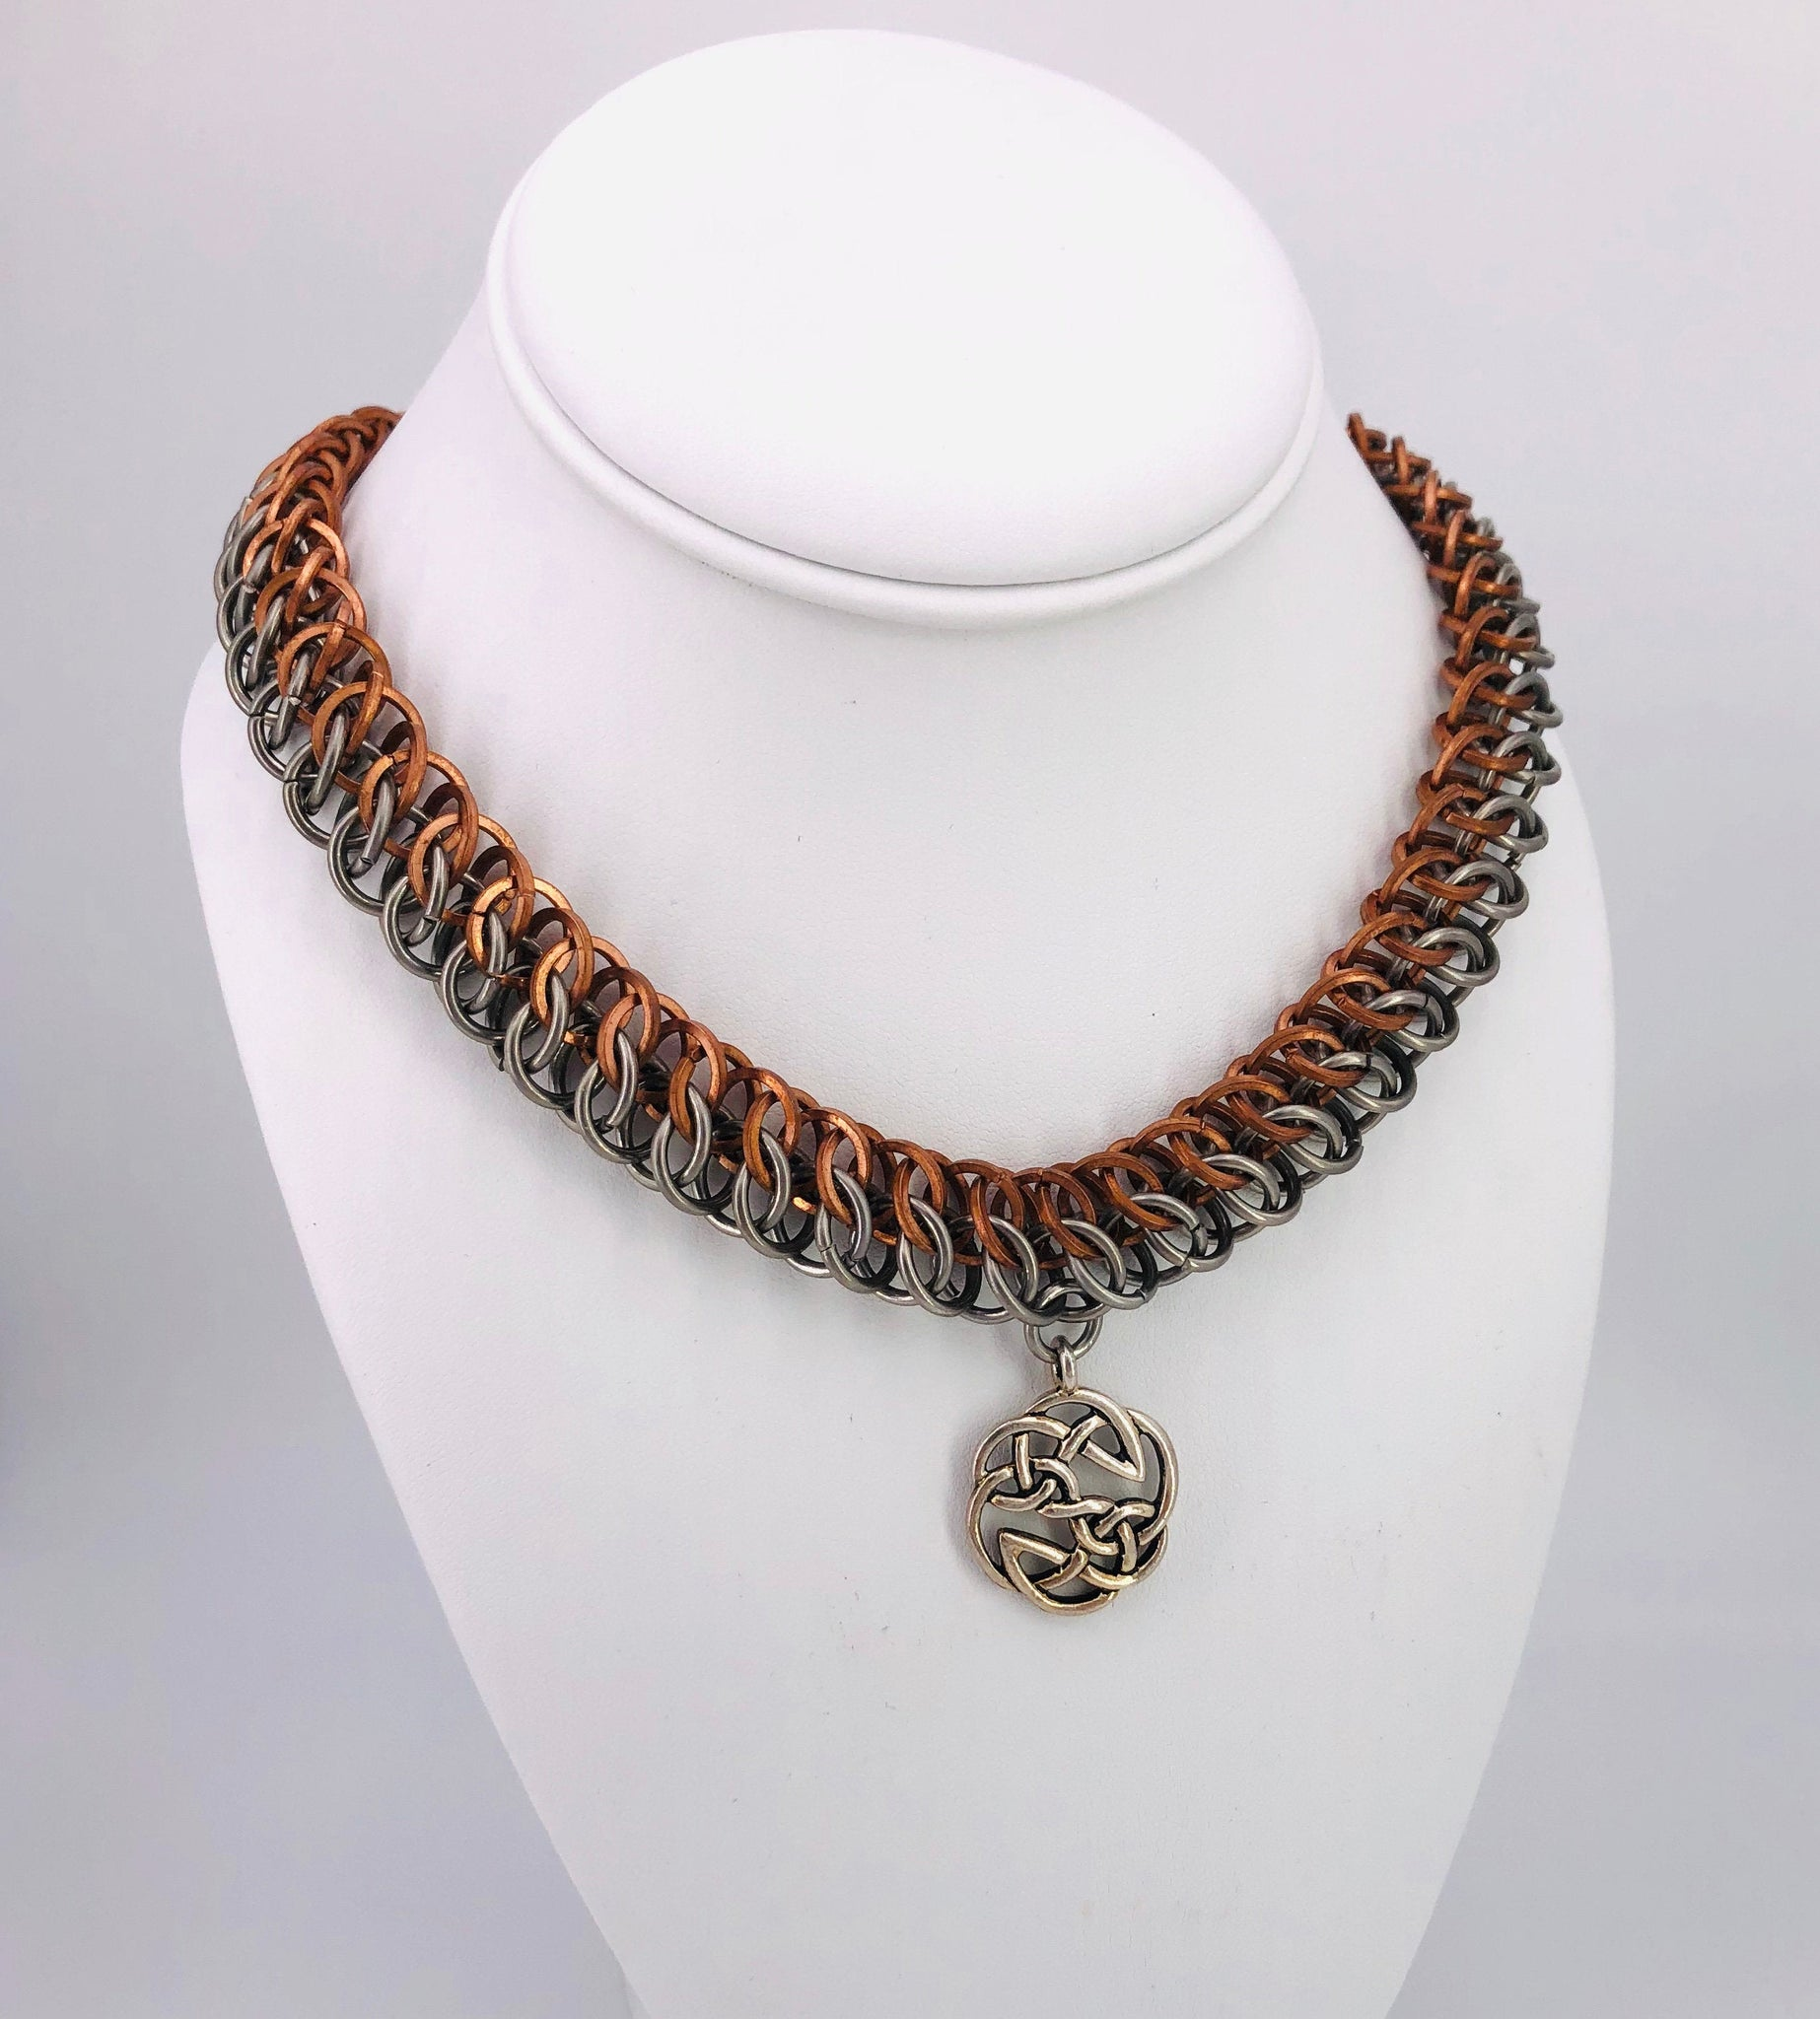 Copper and Stainless Steel Chainmaille Statement Necklace with Celtic Center Pendant